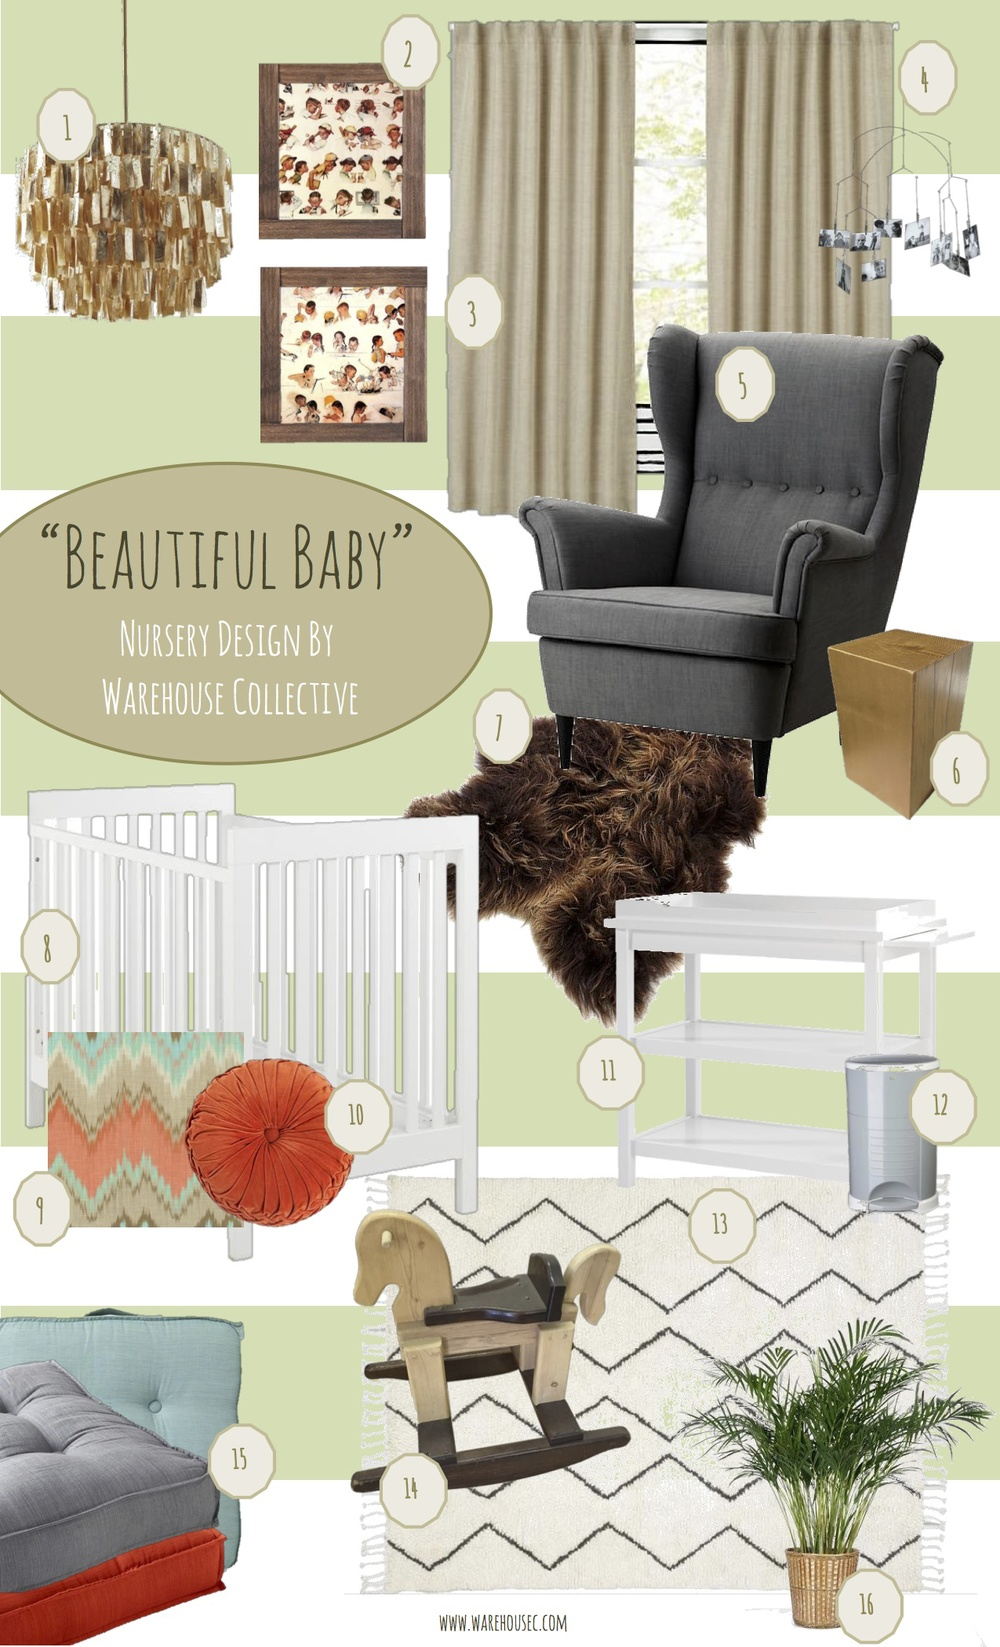 """The inspiration behind """"Beautiful Baby"""" is a neutral nursery, utilizing vintage childhood accents, and a relaxing color scheme. Our client painted two walls and the ceiling with bold stripes inBehr Celery Bunch. With that as our base, we added1.West Elm Round Capiz Chandelier $2792.Client's Vintage Norman Rockwell """"Life of a Boy/Girl""""3.Land of Nod Fresh Linen Curtains in Natural $494.All Modern Photo Mobile $195.Ikea Strandmon Wing Chair in Svanby Grey $279(DIY to Rocking Chair)6.Warehouse Collective Solid Wood Block Side Table $2007.Land of Nod Just Fur You Baby Blanket $998.Land of Nod Elemental Crib $5999.Ollie & Penny Ikat Organic Cotton Swaddle $2910.Urban Outfitters Round Pintuck Pillow $3411.Land of Nod Change It Up Changing Table $31512.Diaper Dekor Kolor Plus Pail $4613.West Elm Souk Wool Rug 3x5 $15914.Client's Vintage Wooden Rocking Horse15.World Market Khadi Tufted Floor Pillow $4016.Ikea Potted Plant $15"""